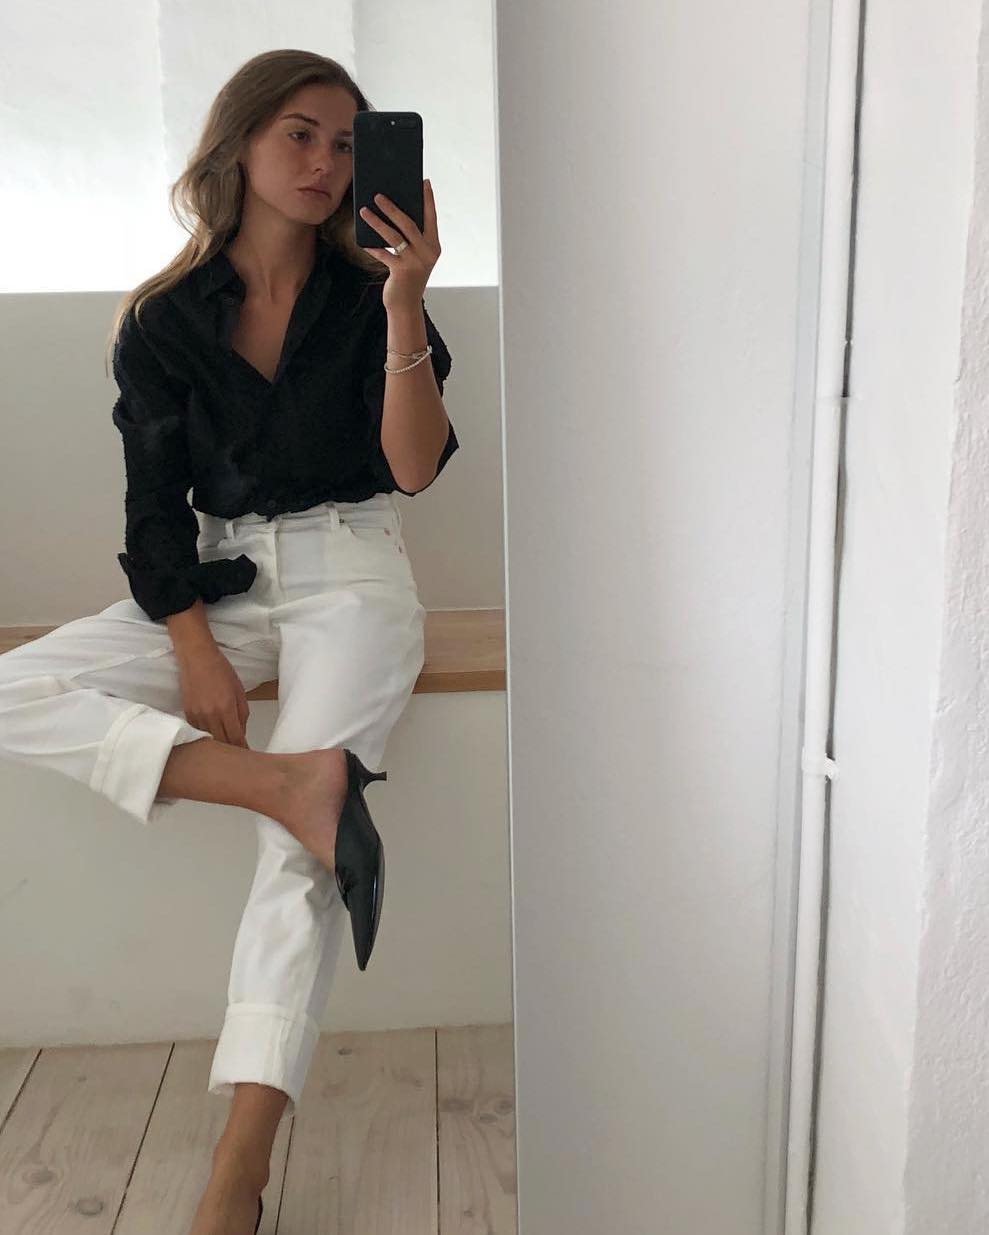 Sophia Roe 3-Piece Spring Outfit Idea — Black Button-Down Shirt, White Jeans, and Black Mules Kitten Heels